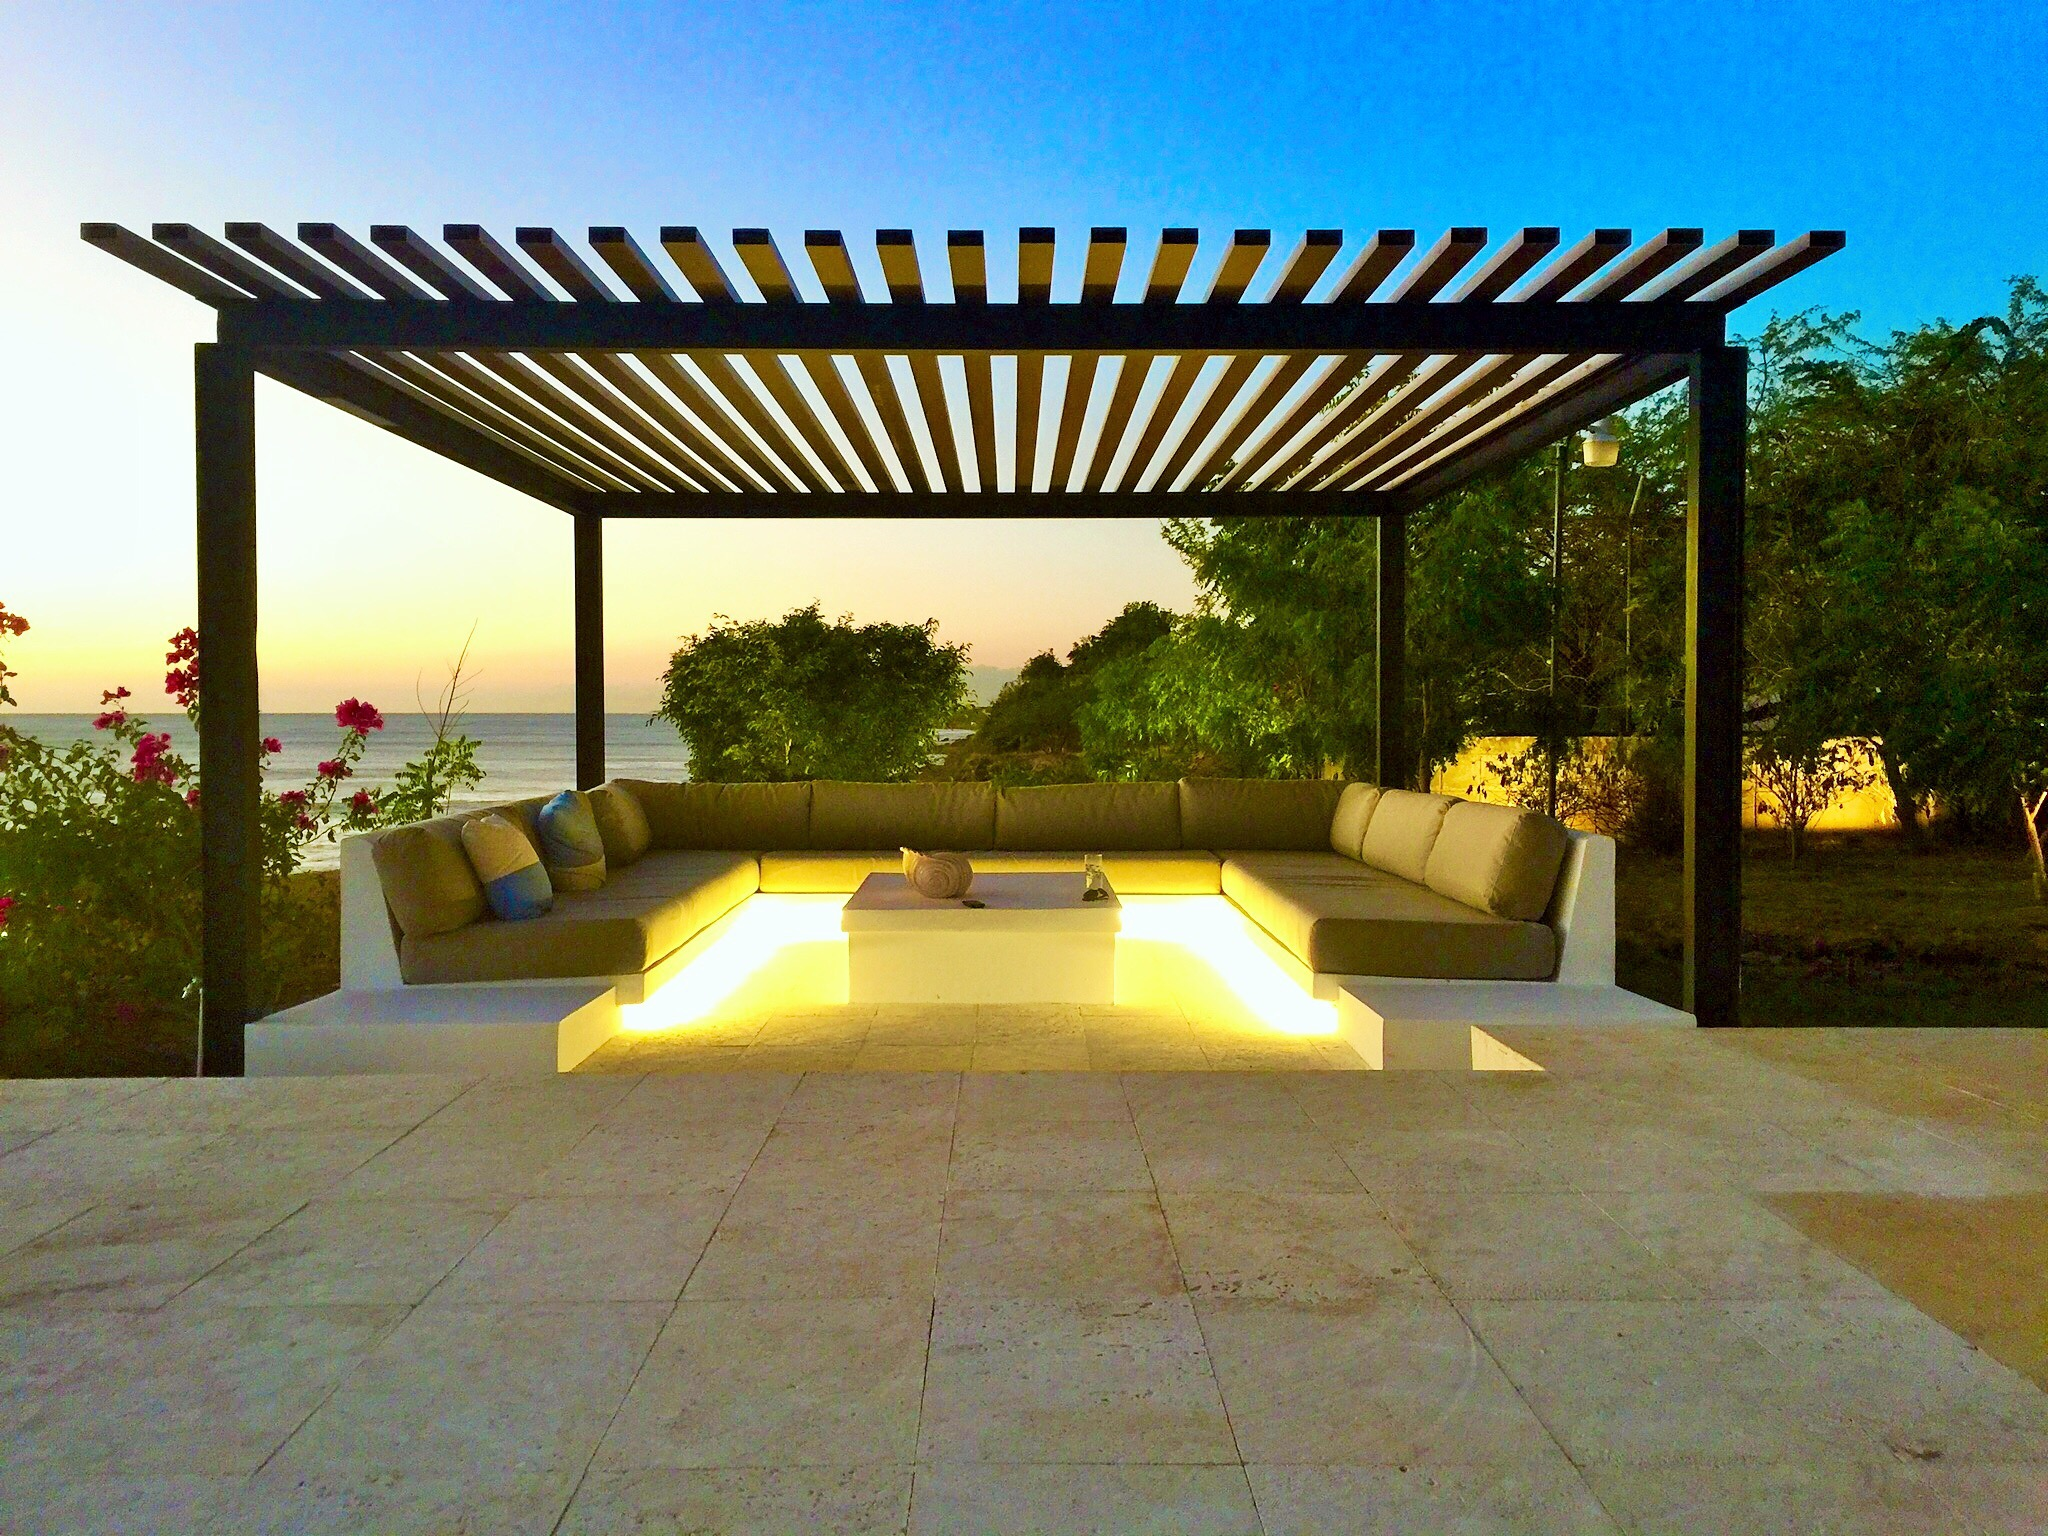 Outside sitting area, exterior design, architect design work, Sorrento Beach Residence